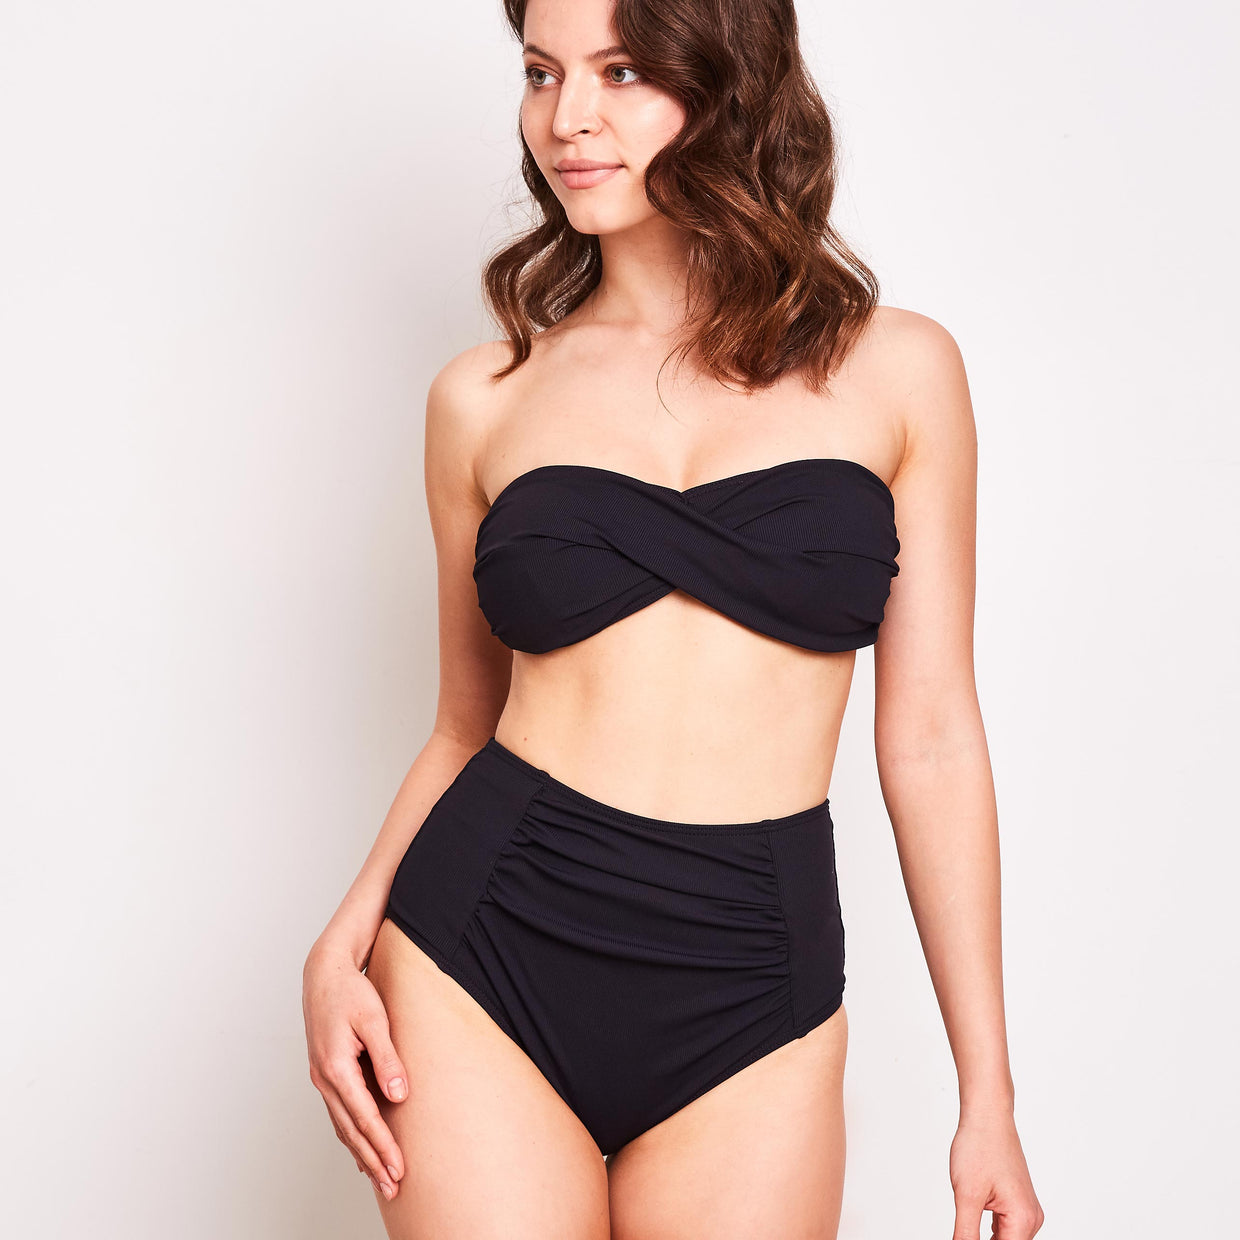 Erica Bikini Bottom High Waisted Ribbed Black - 'The fit is true to size and flattering'